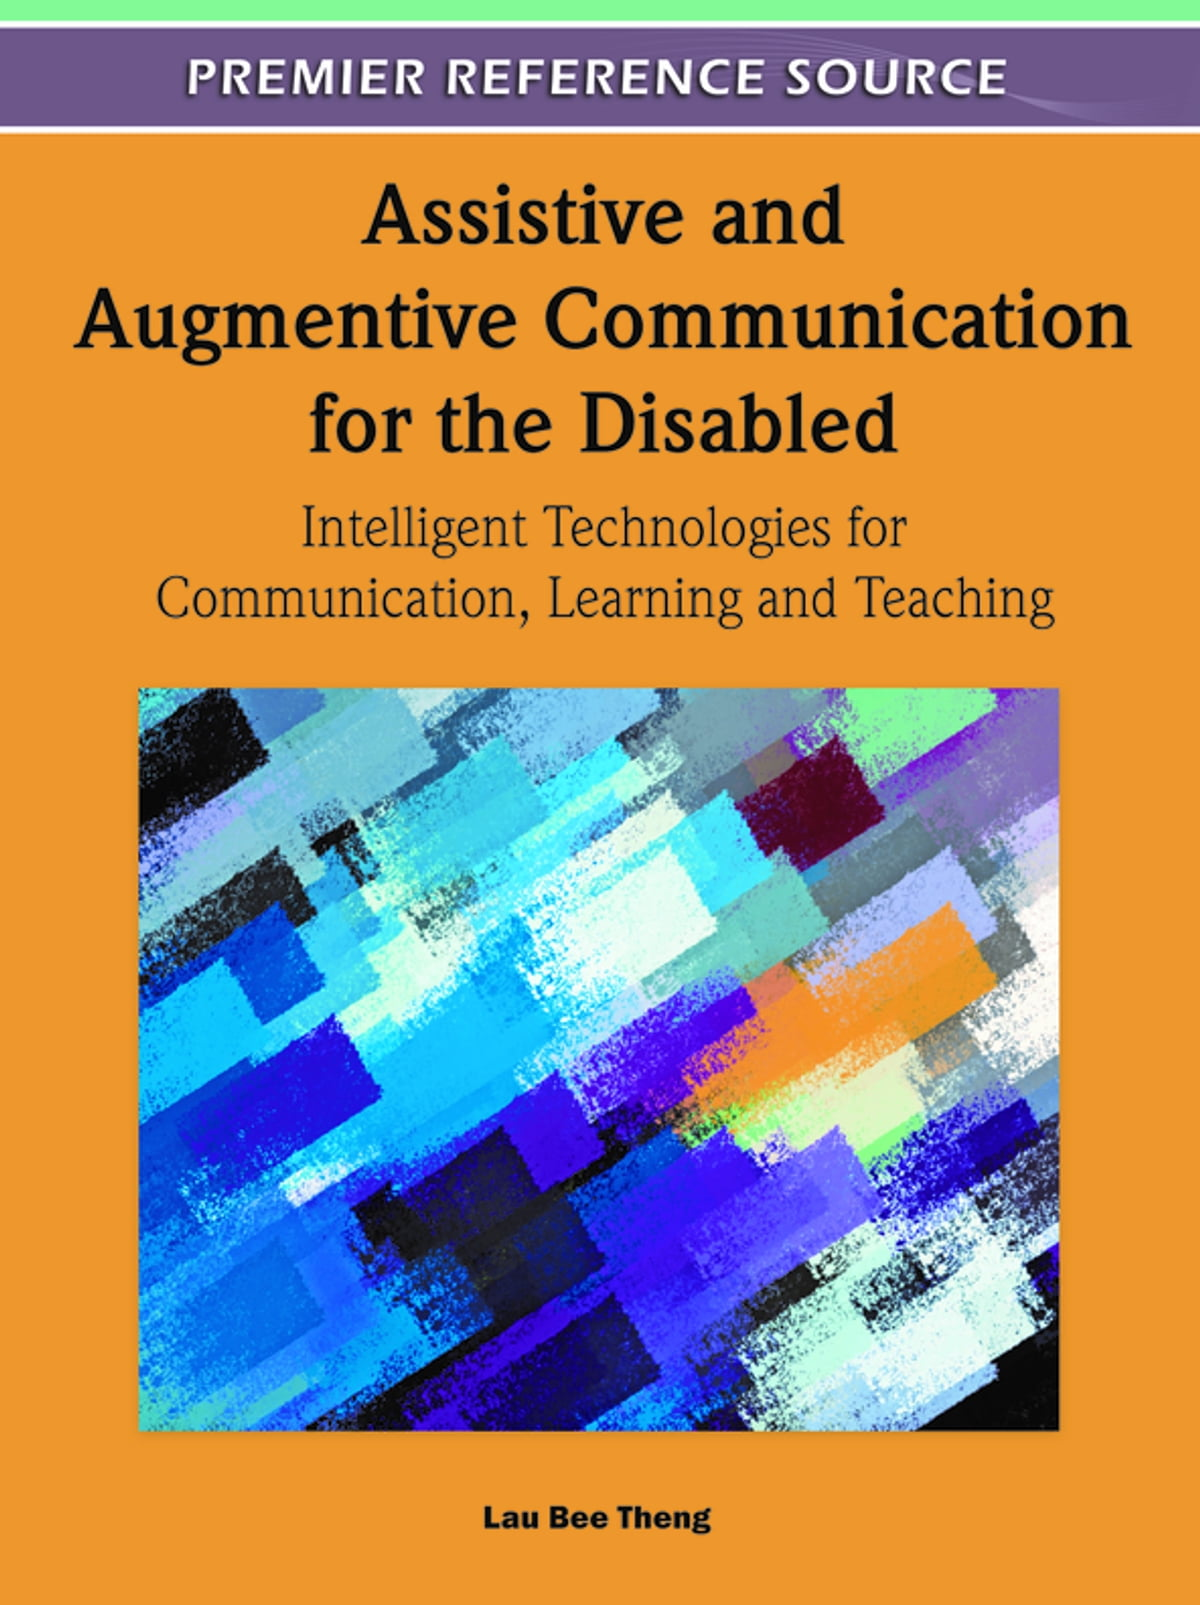 assistive and augmentive communication for the disabled   ebook di